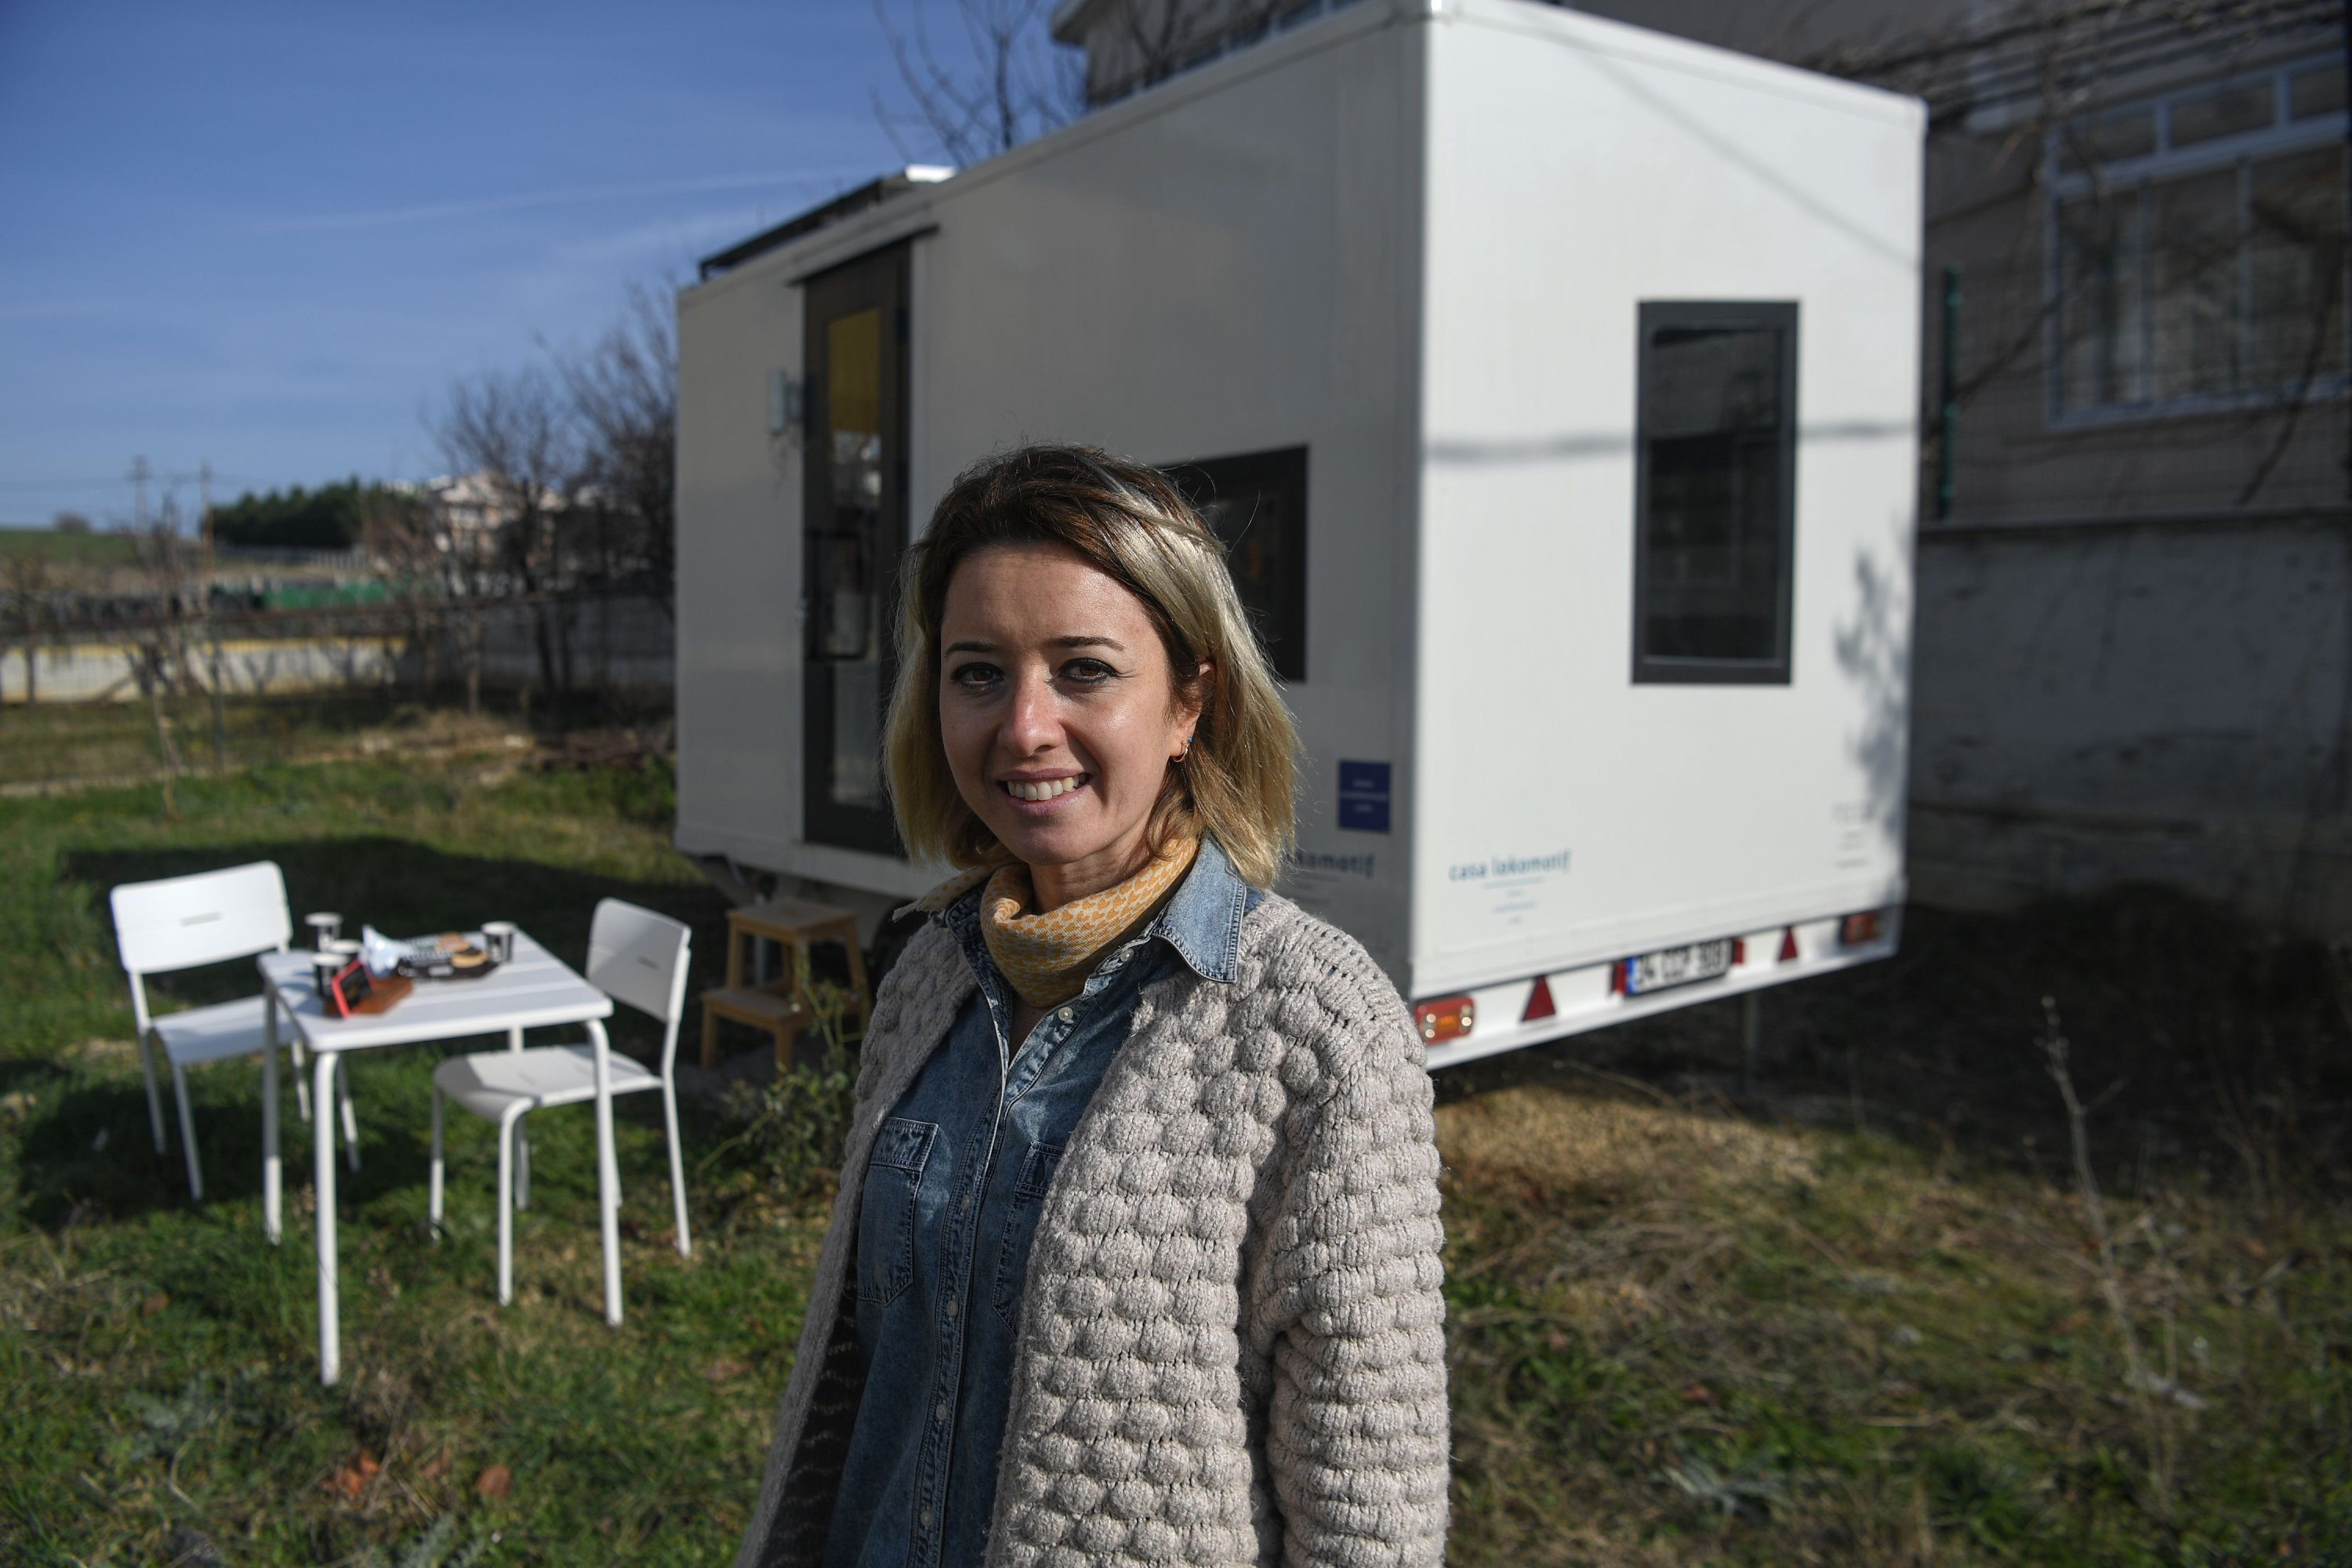 Pelin Düştegör, the owner of the brand Casa Lokomotif, poses for a photograph in the Silivri district of Istanbul, Turkey, Jan. 21, 2021. (AFP Photo)